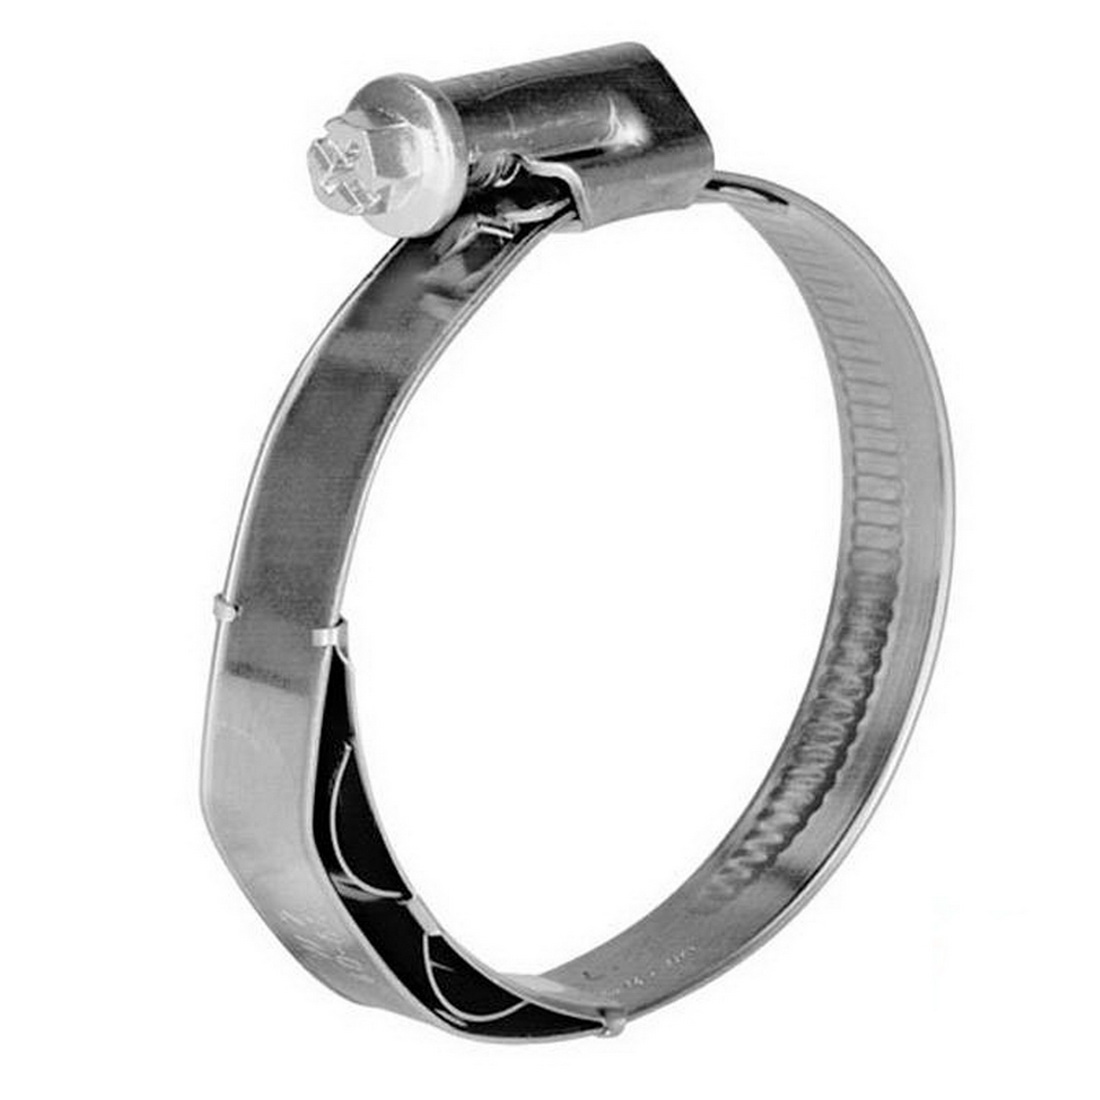 TORRO Worm Drive Hose Clamp 60-80mm 12mm Band W3 430 Stainless Steel P1 WDHC608012W3